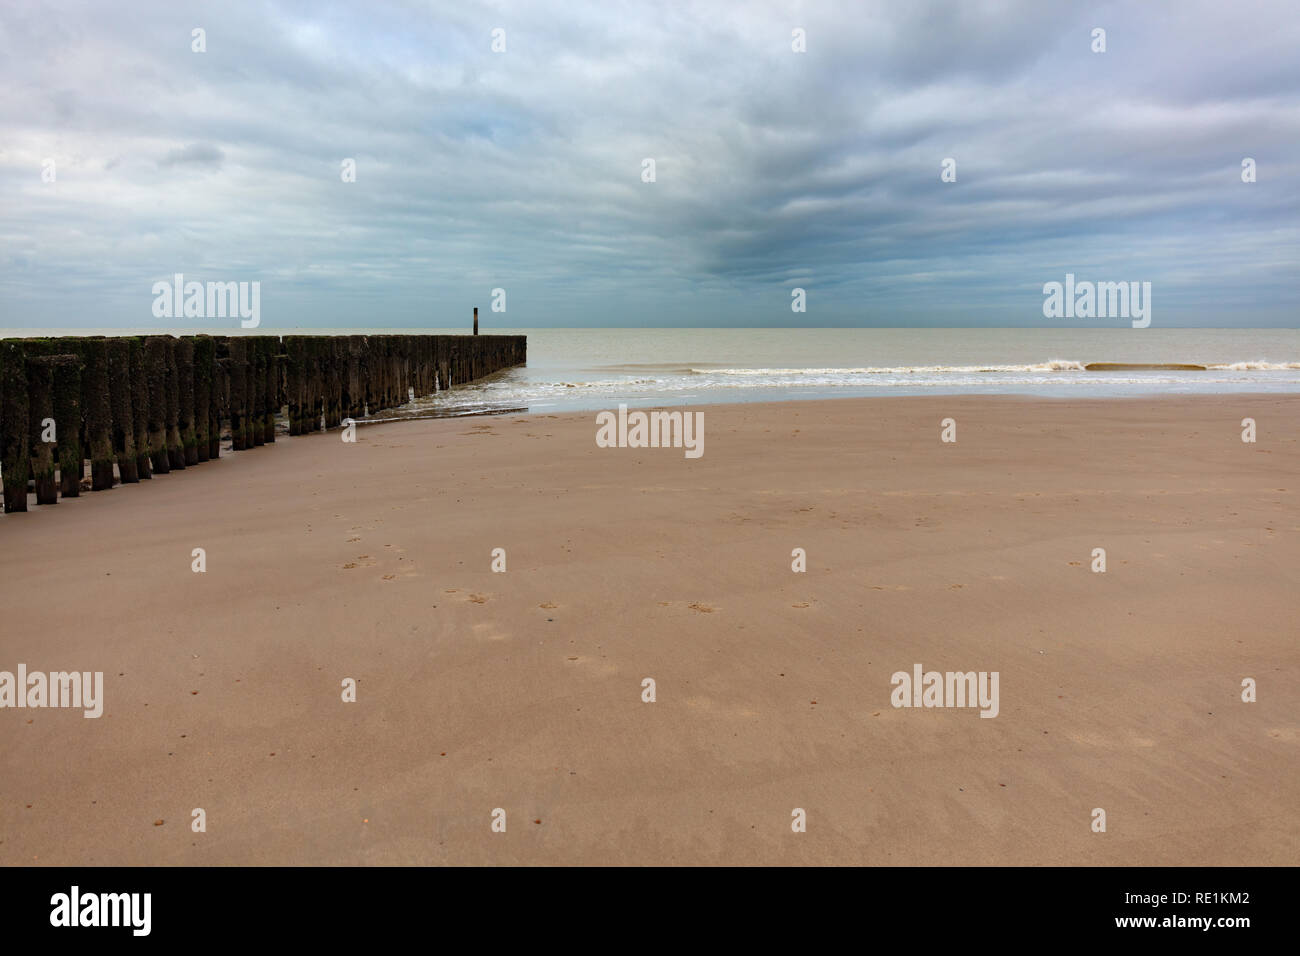 Beach at the Northsea, Netherlands Stock Photo